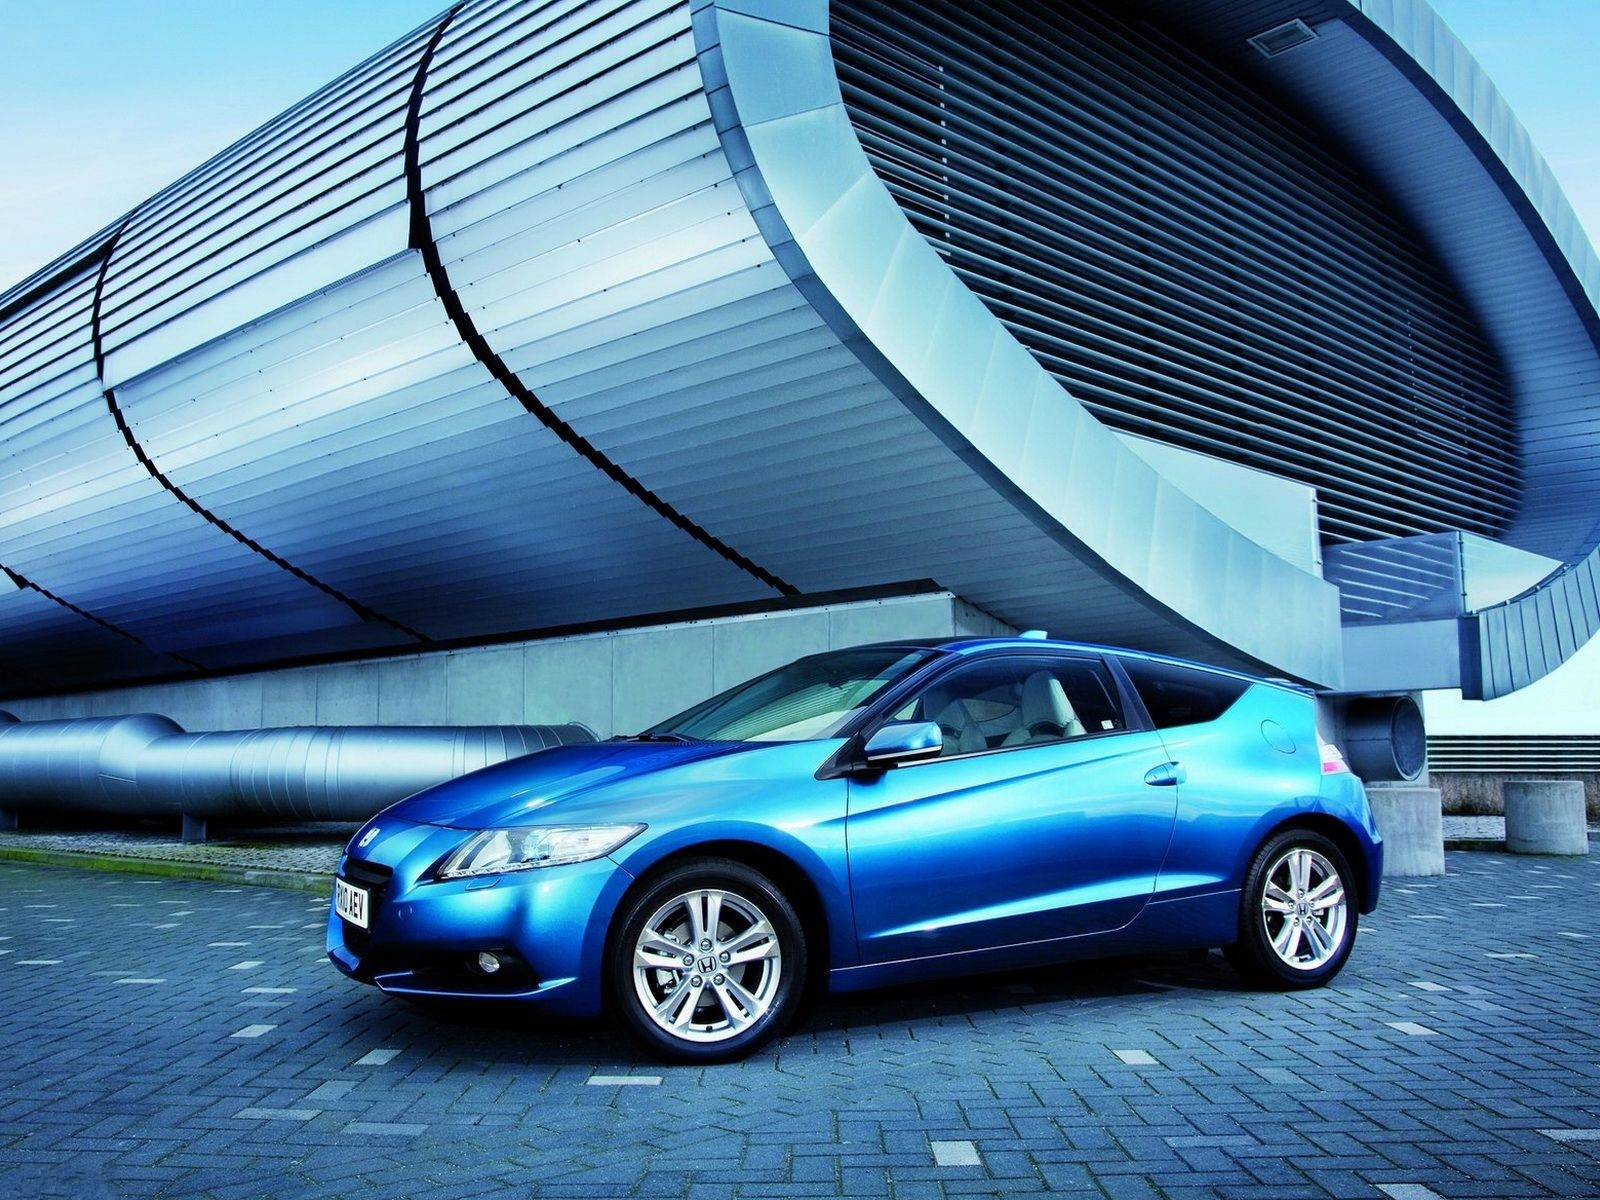 Blue Honda Cr Z Hybrid Car Hd Wallpaper Hd Car Wallpapers